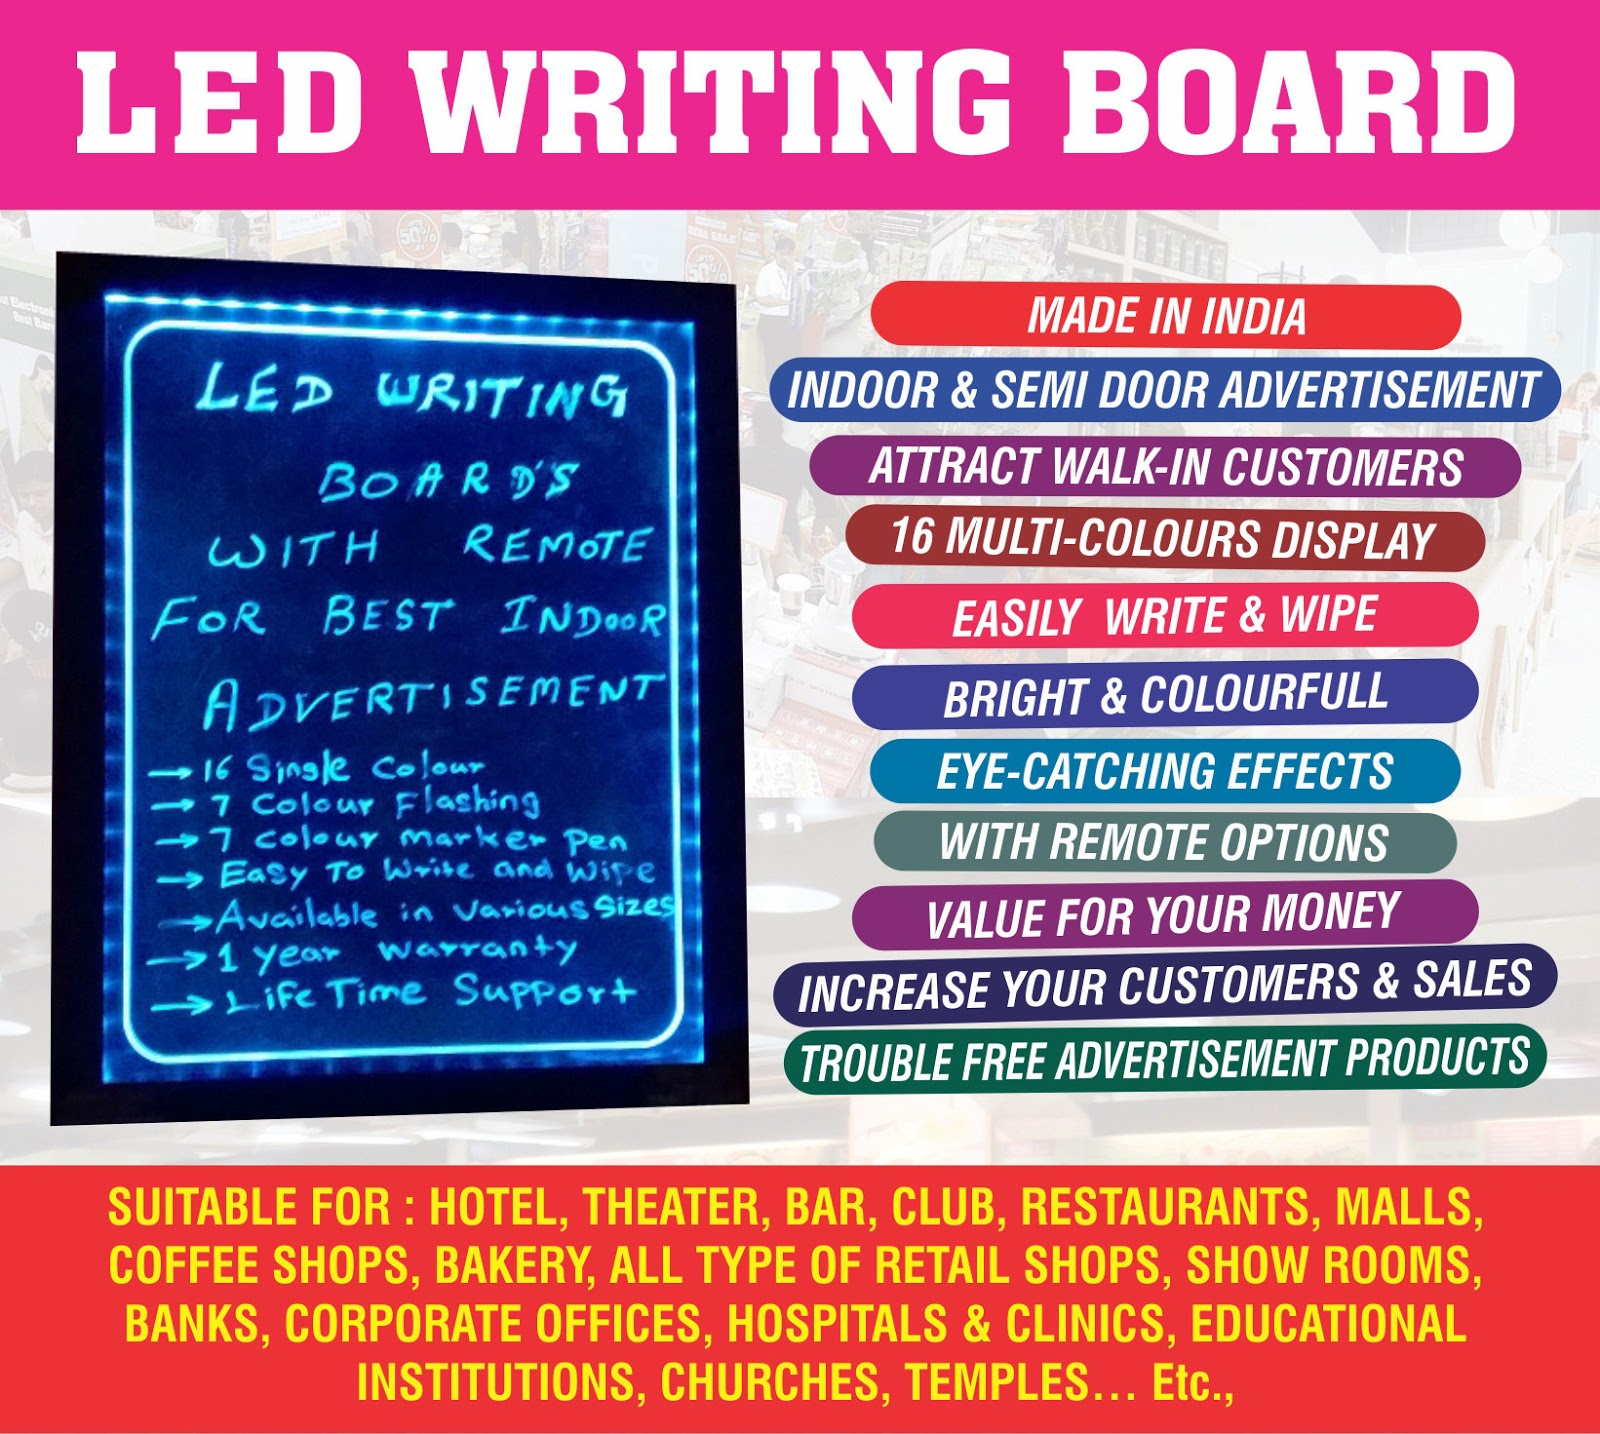 Led writing board manufacturers and suppliers in tamil nadu may 2016 our ero mart led writing board can be used in hotels restaurants shopping malls multiplex cinemas coffee shops pubs bars nightclubs commercial biocorpaavc